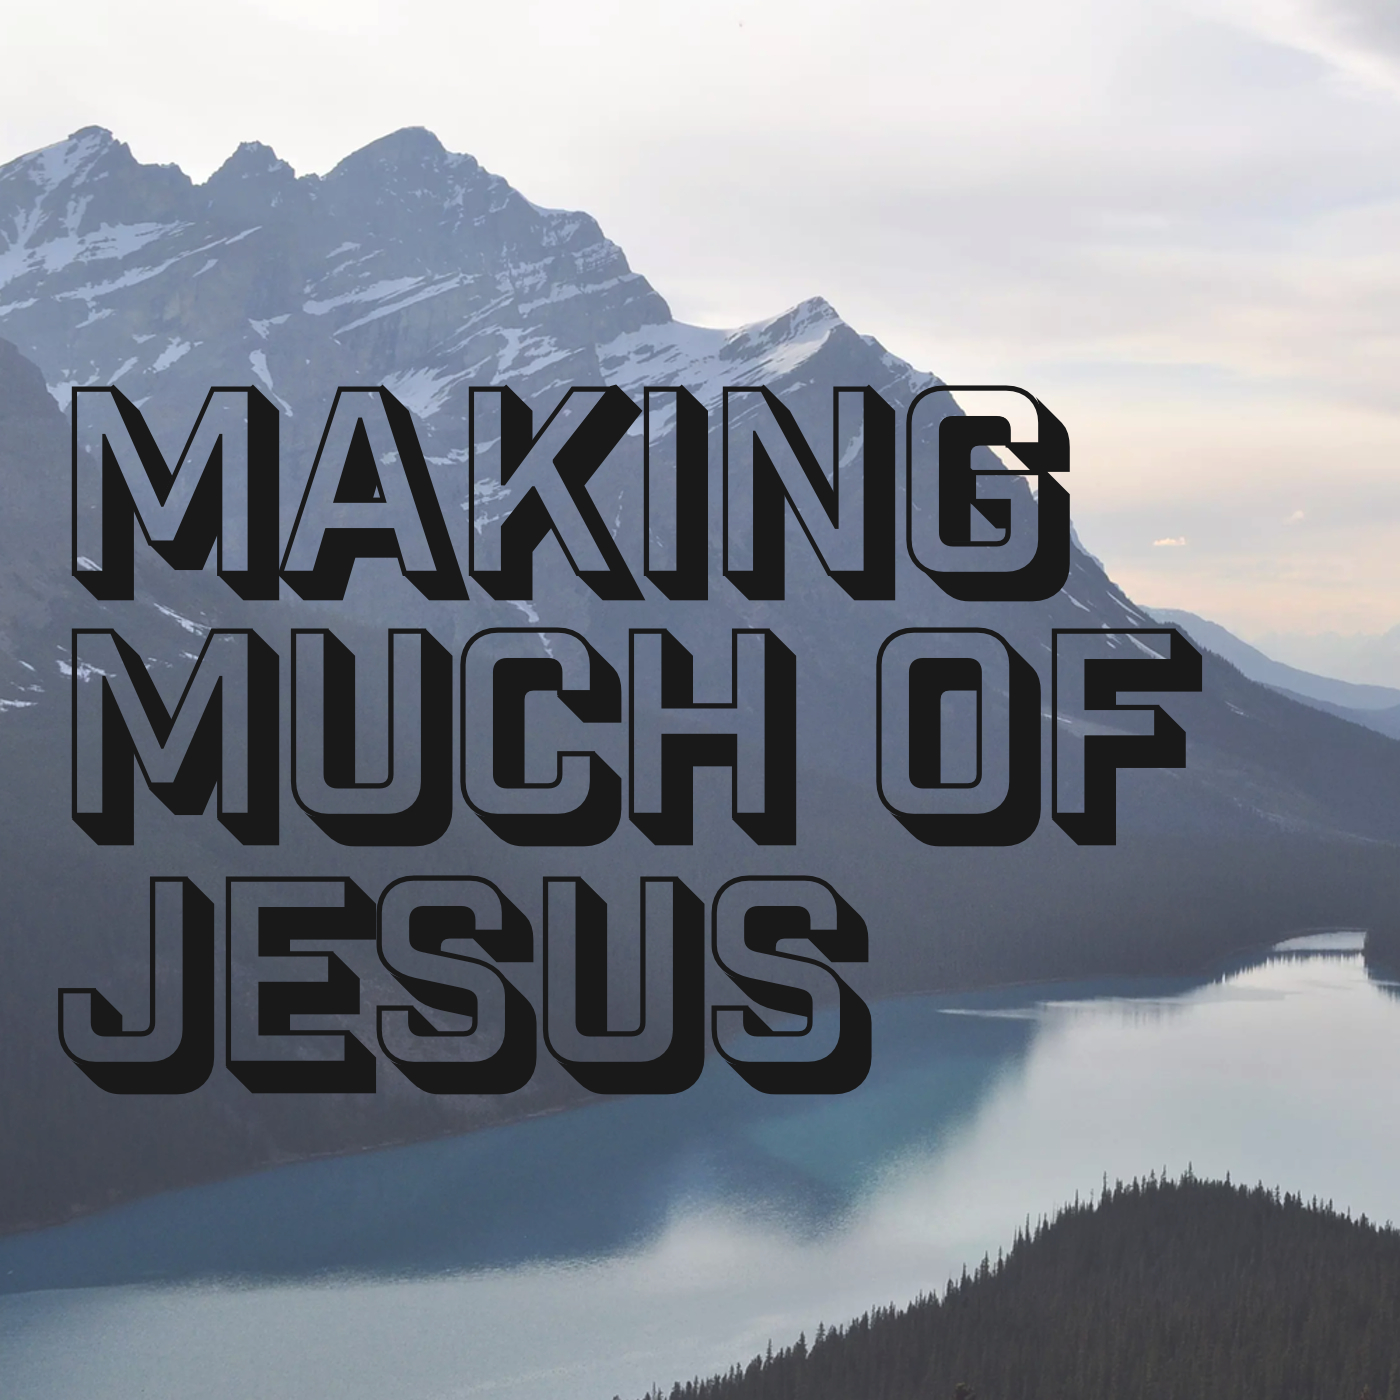 Making Much of Jesus